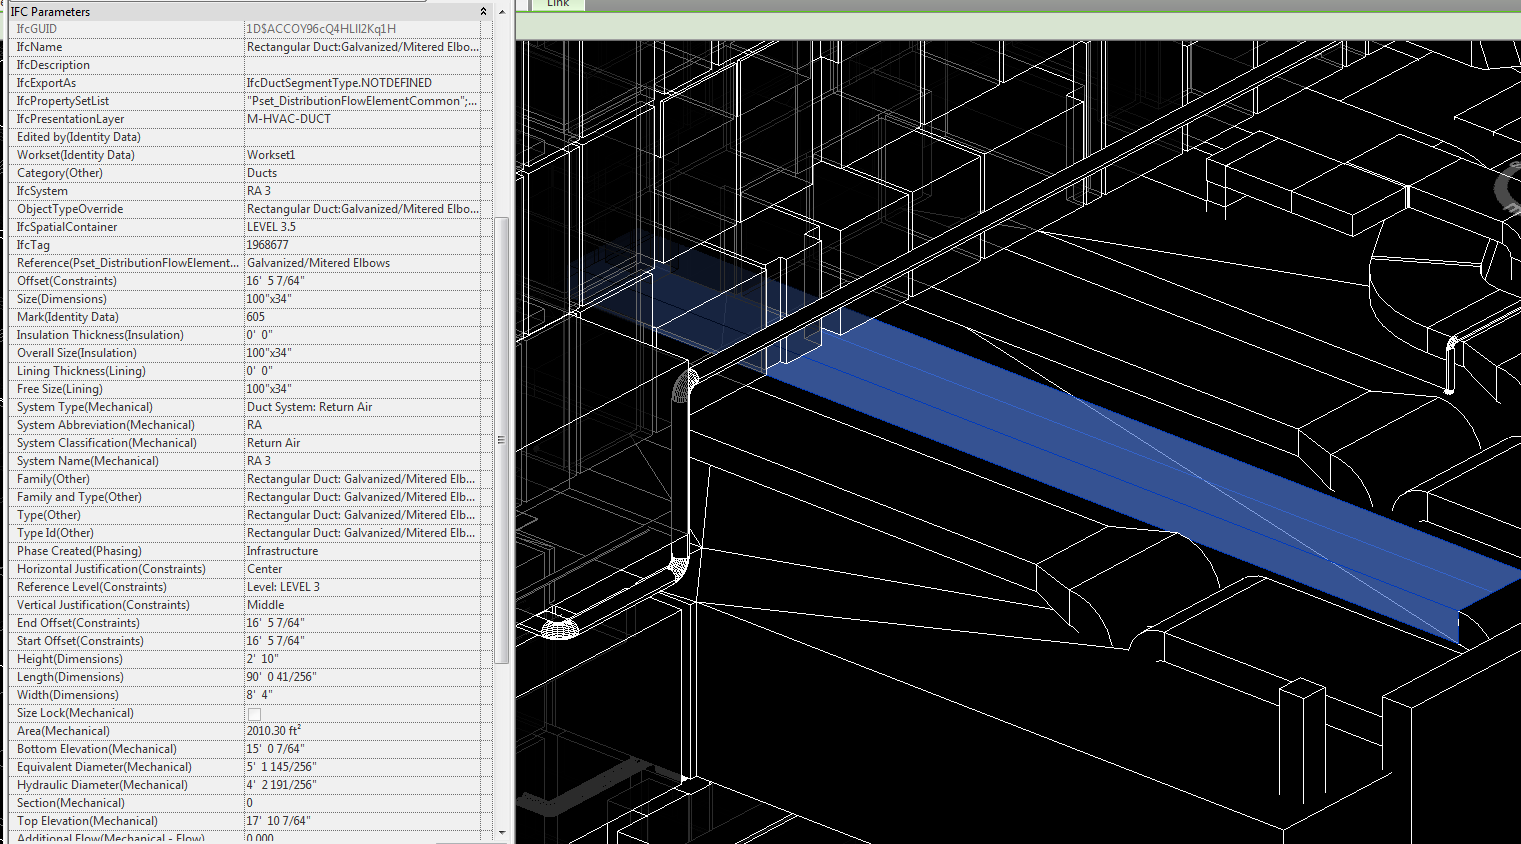 Revit IFC Export - IFC Parameters of Duct and Pipe